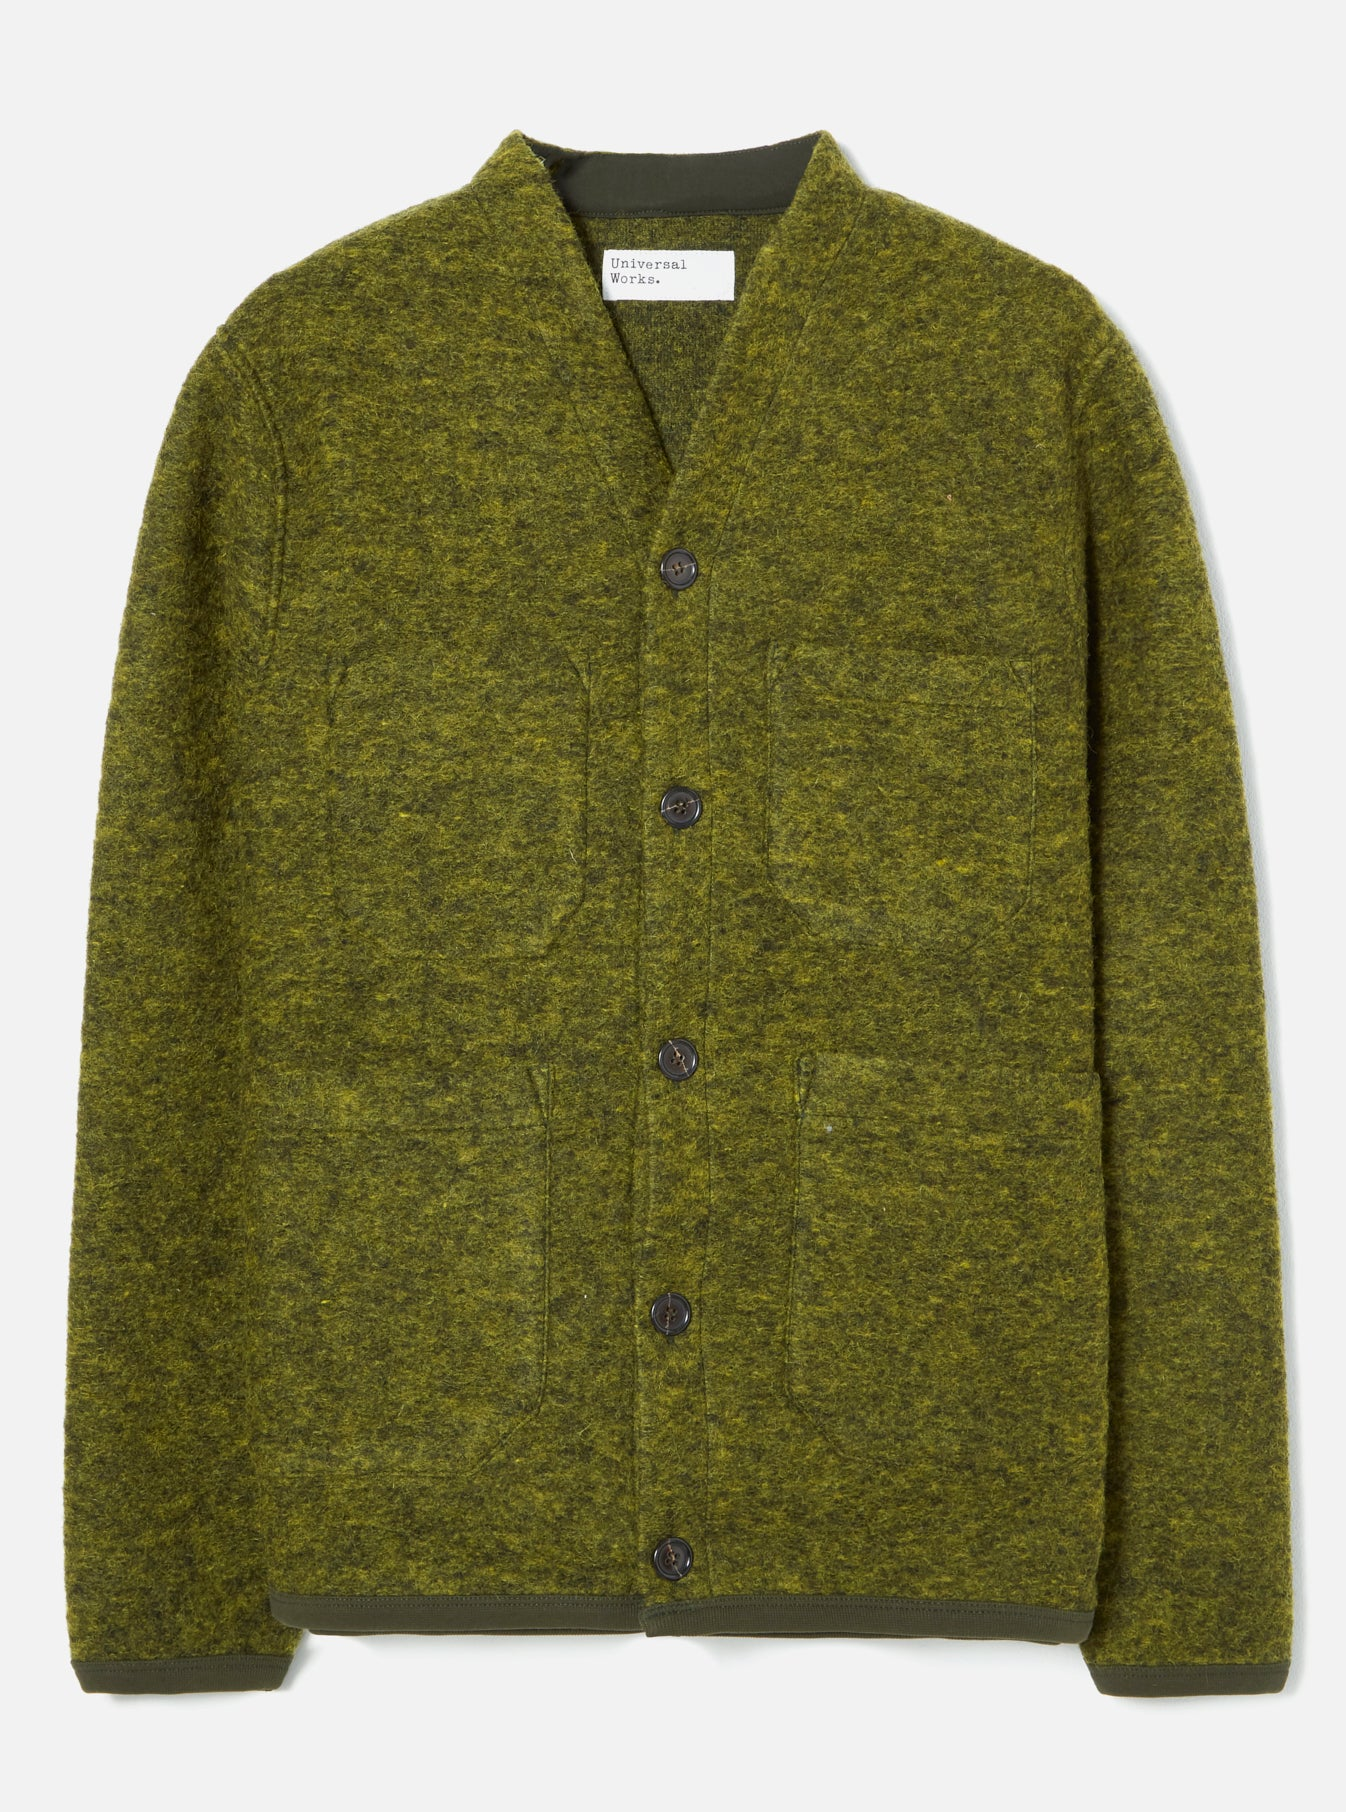 Universal Works Cardigan in Green Wool Fleece